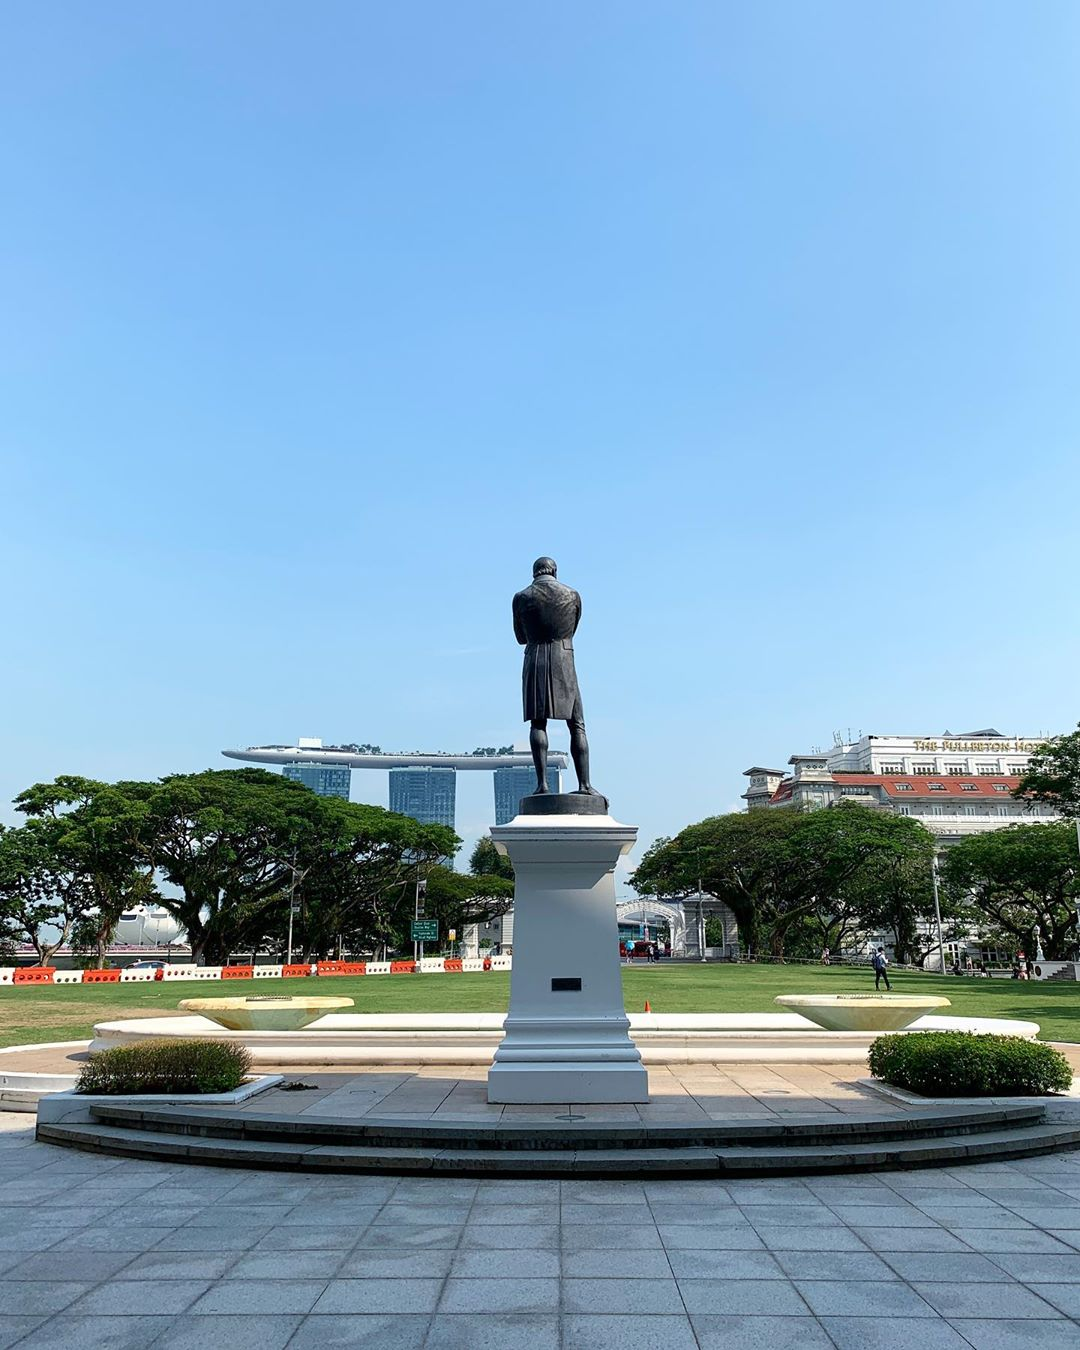 best fireworks viewing spots in singapore - victoria theatre and sir stamford raffles statue